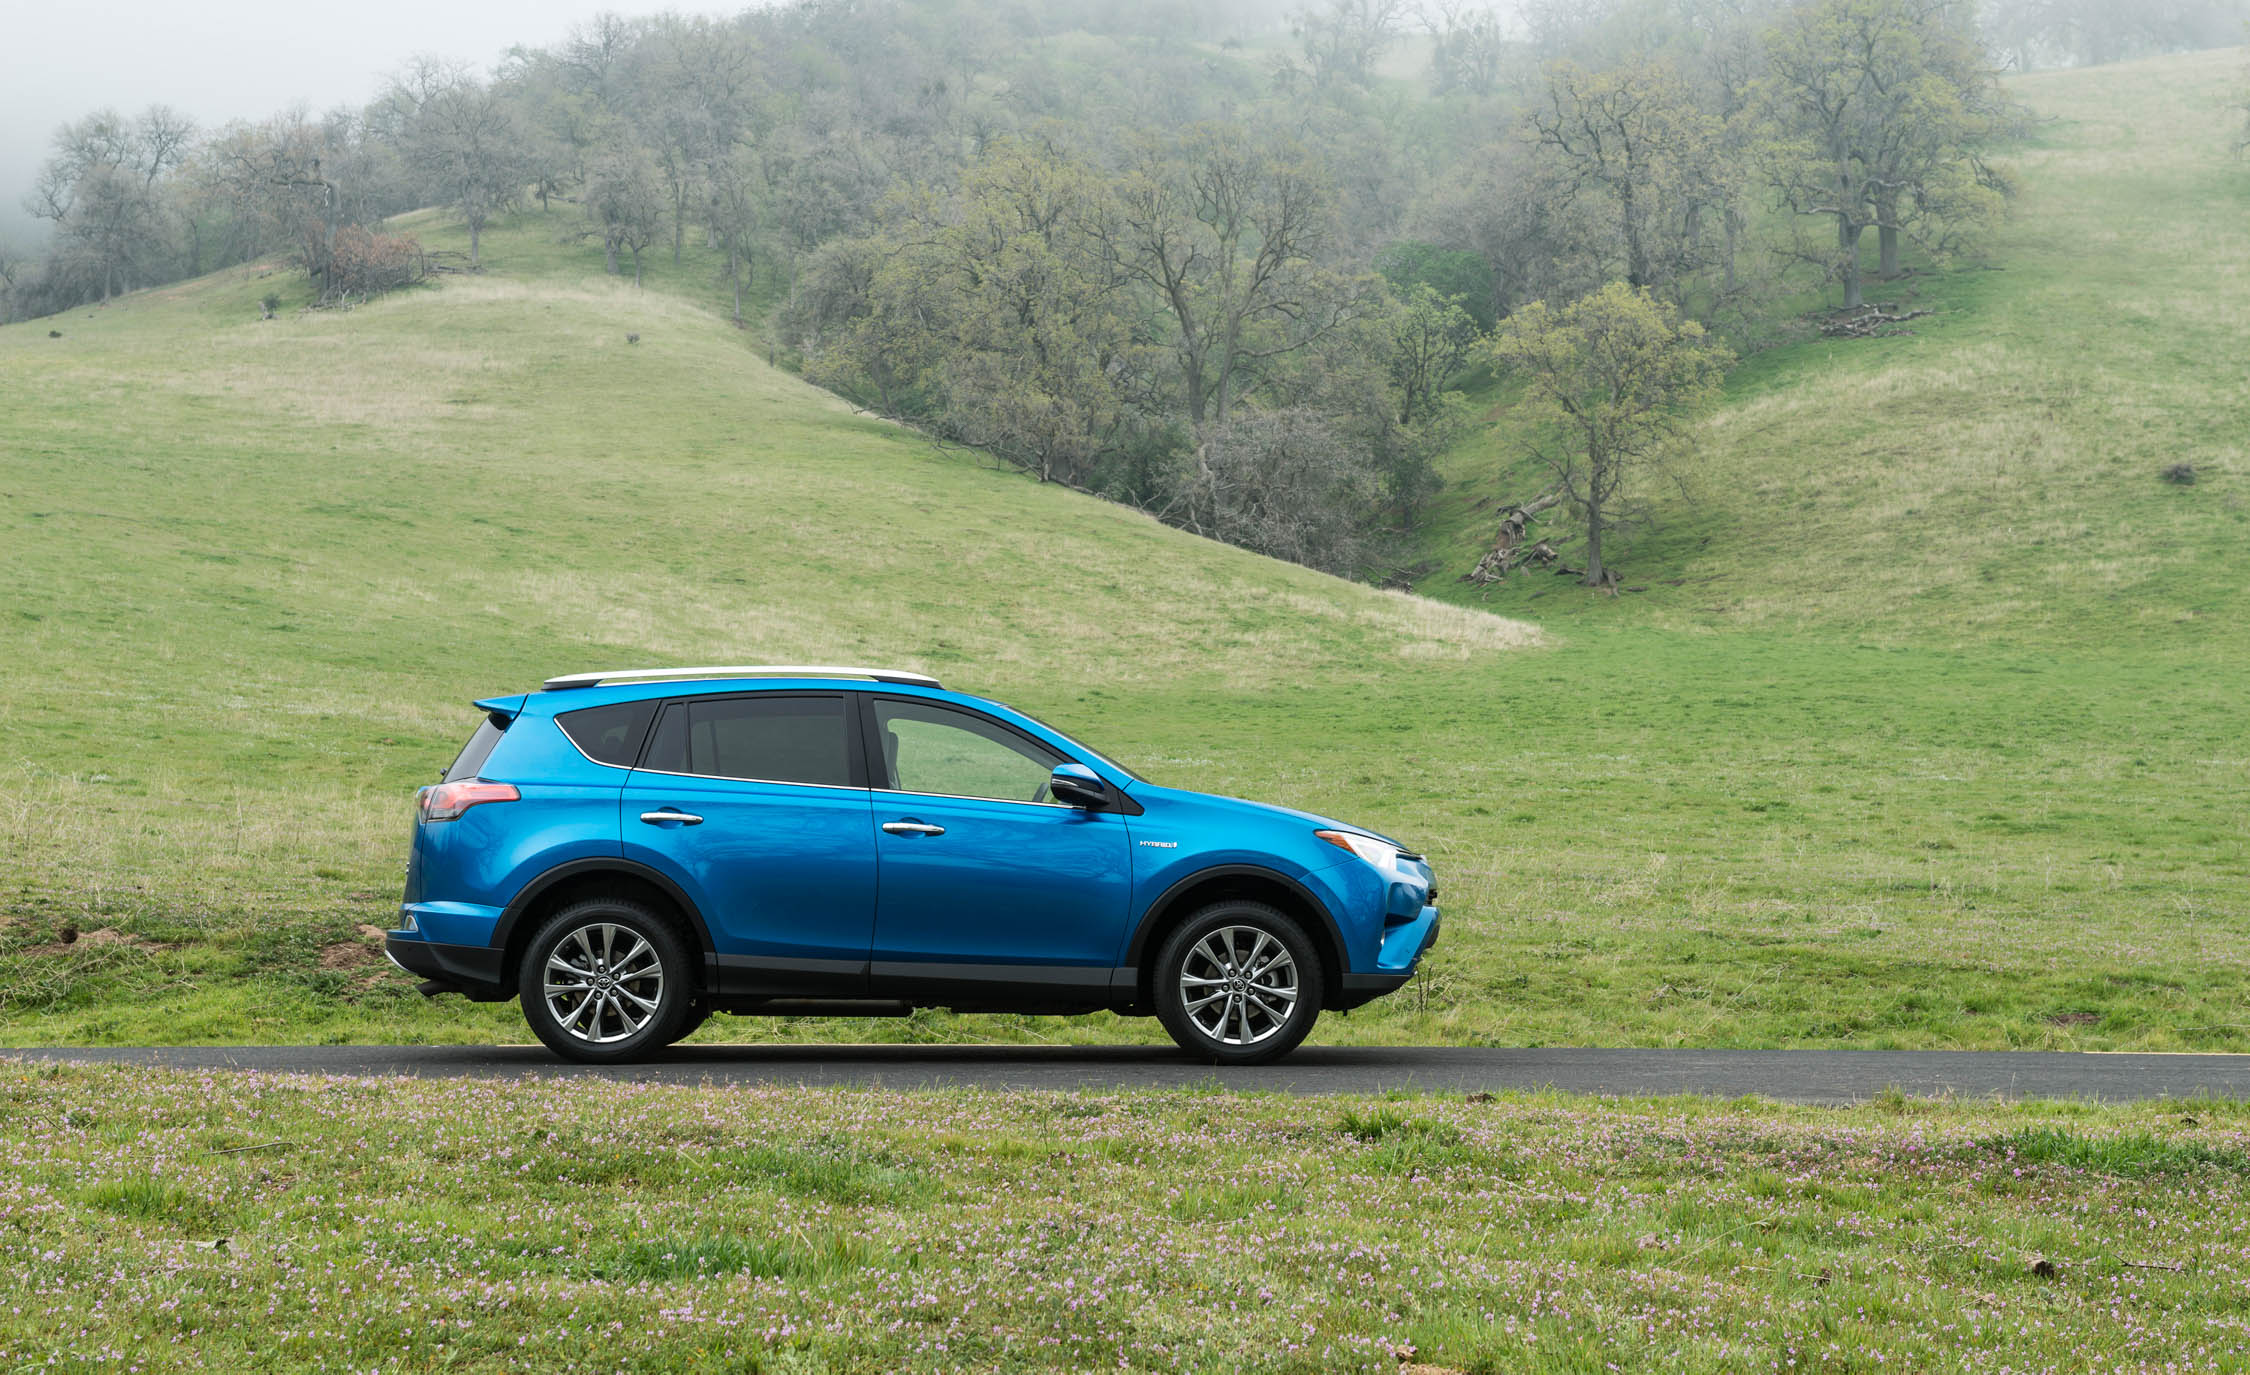 2016 Toyota Rav4 Hybrid Exterior Side (Photo 11 of 26)